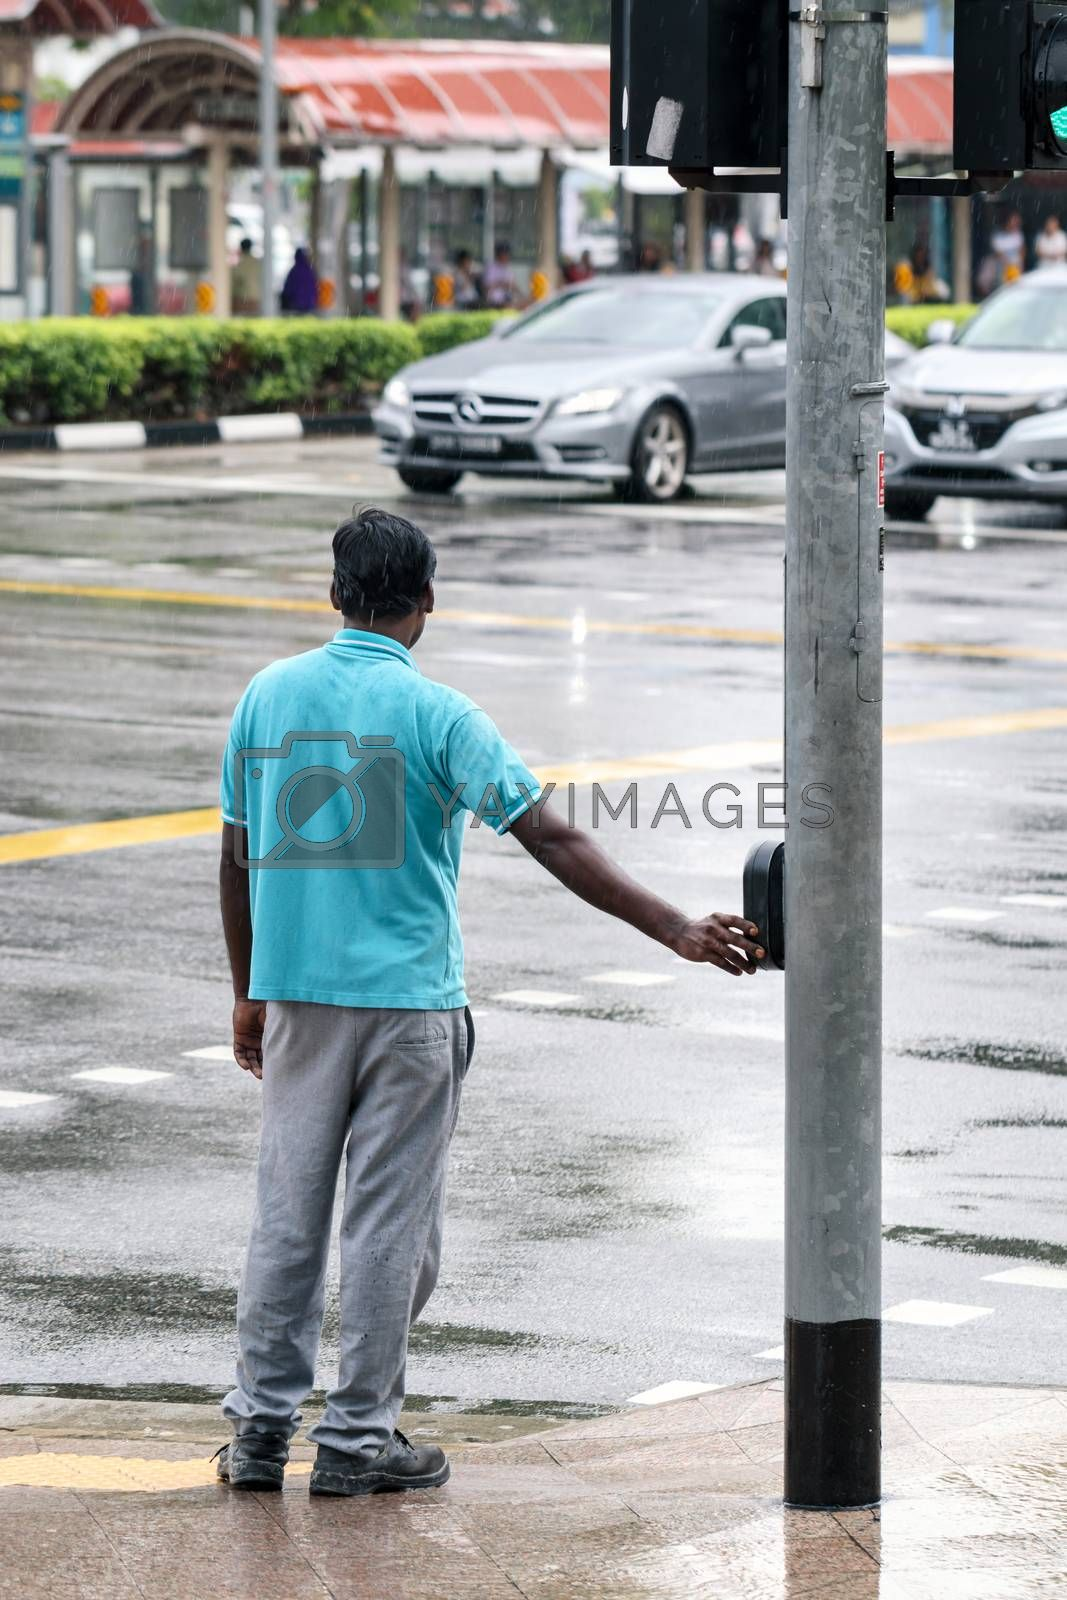 pedestrian pushing button on traffic light pole to get green sign for safely crossing street at intersection, people crossing the street, waiting for flashing lights of walk or don't walk